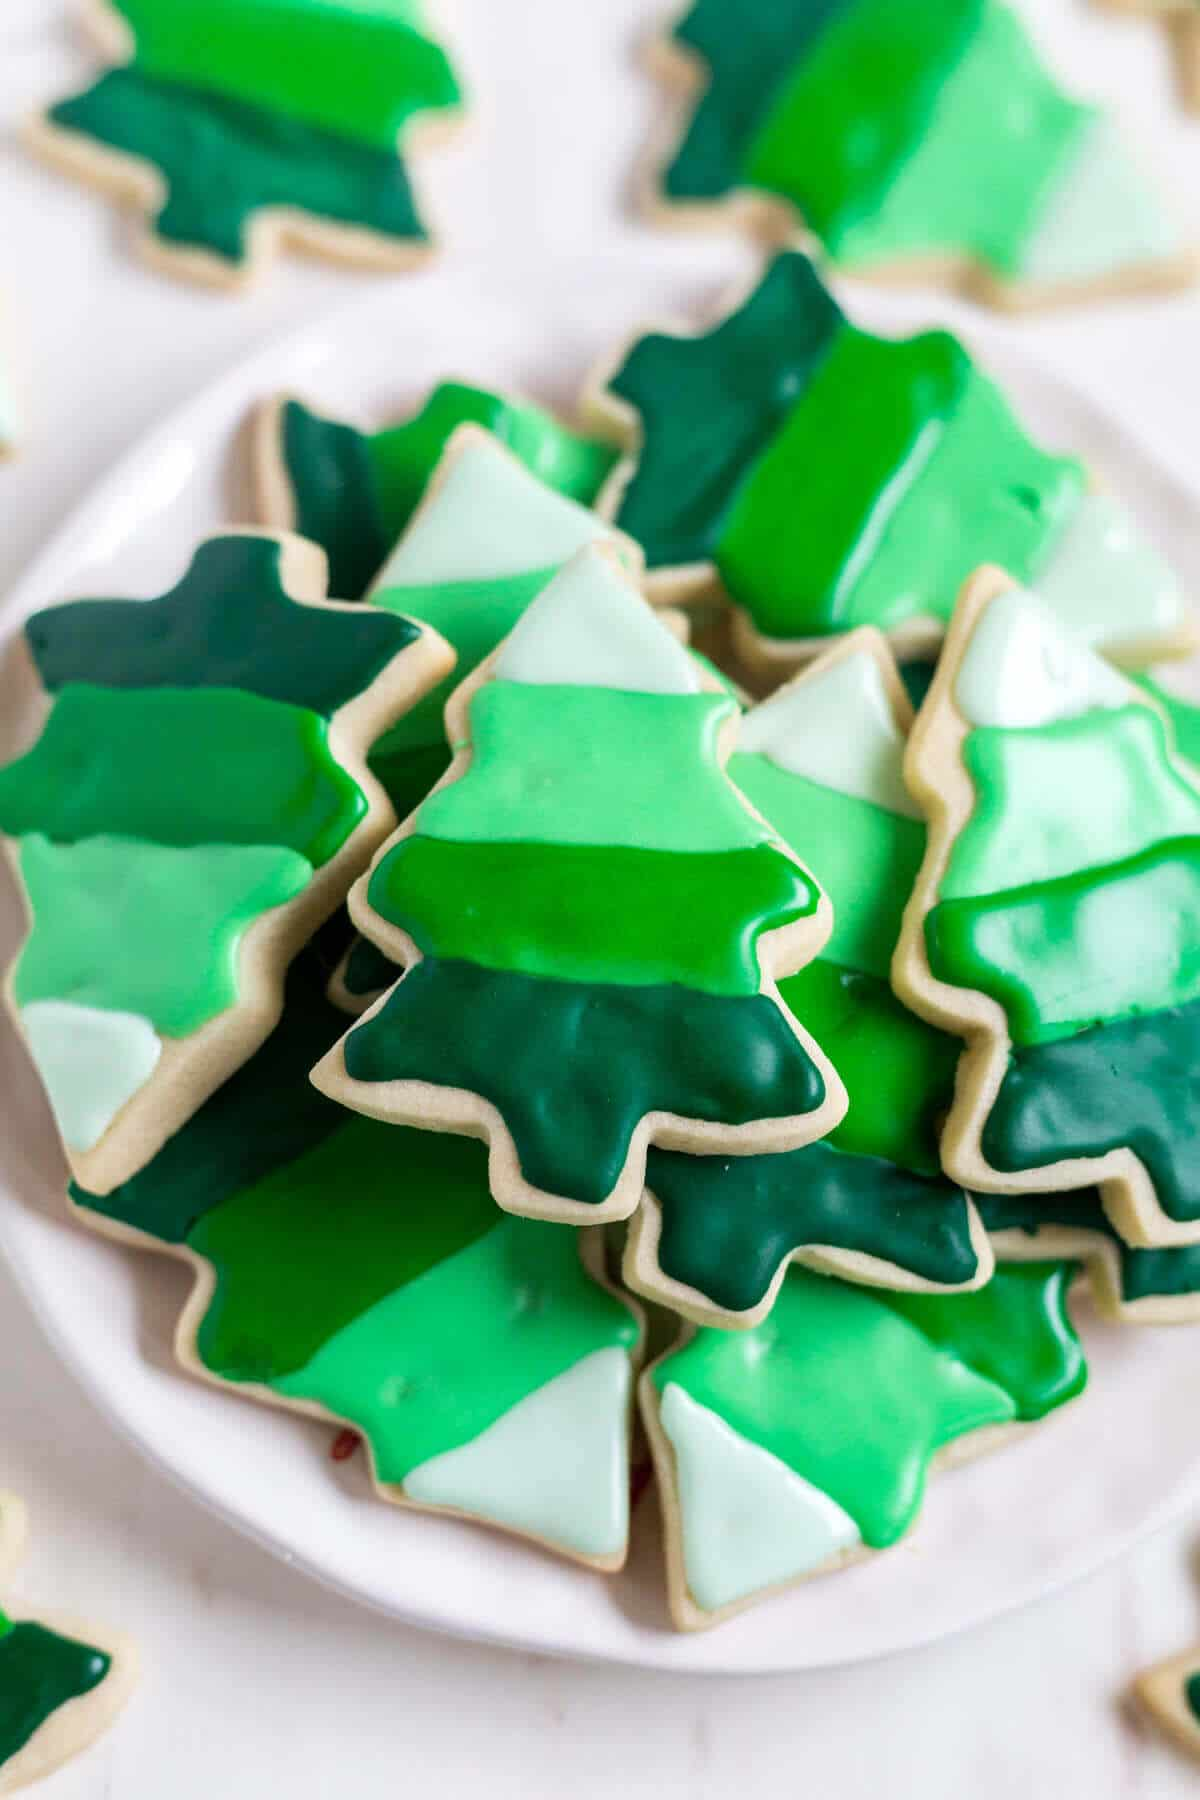 These Christmas tree cookies are decorated with 4 colors of royal icing to create an ombre effect! With different shades of green you'll get a fun, festive and impressive cookie to add to the list of Christmas cookies.